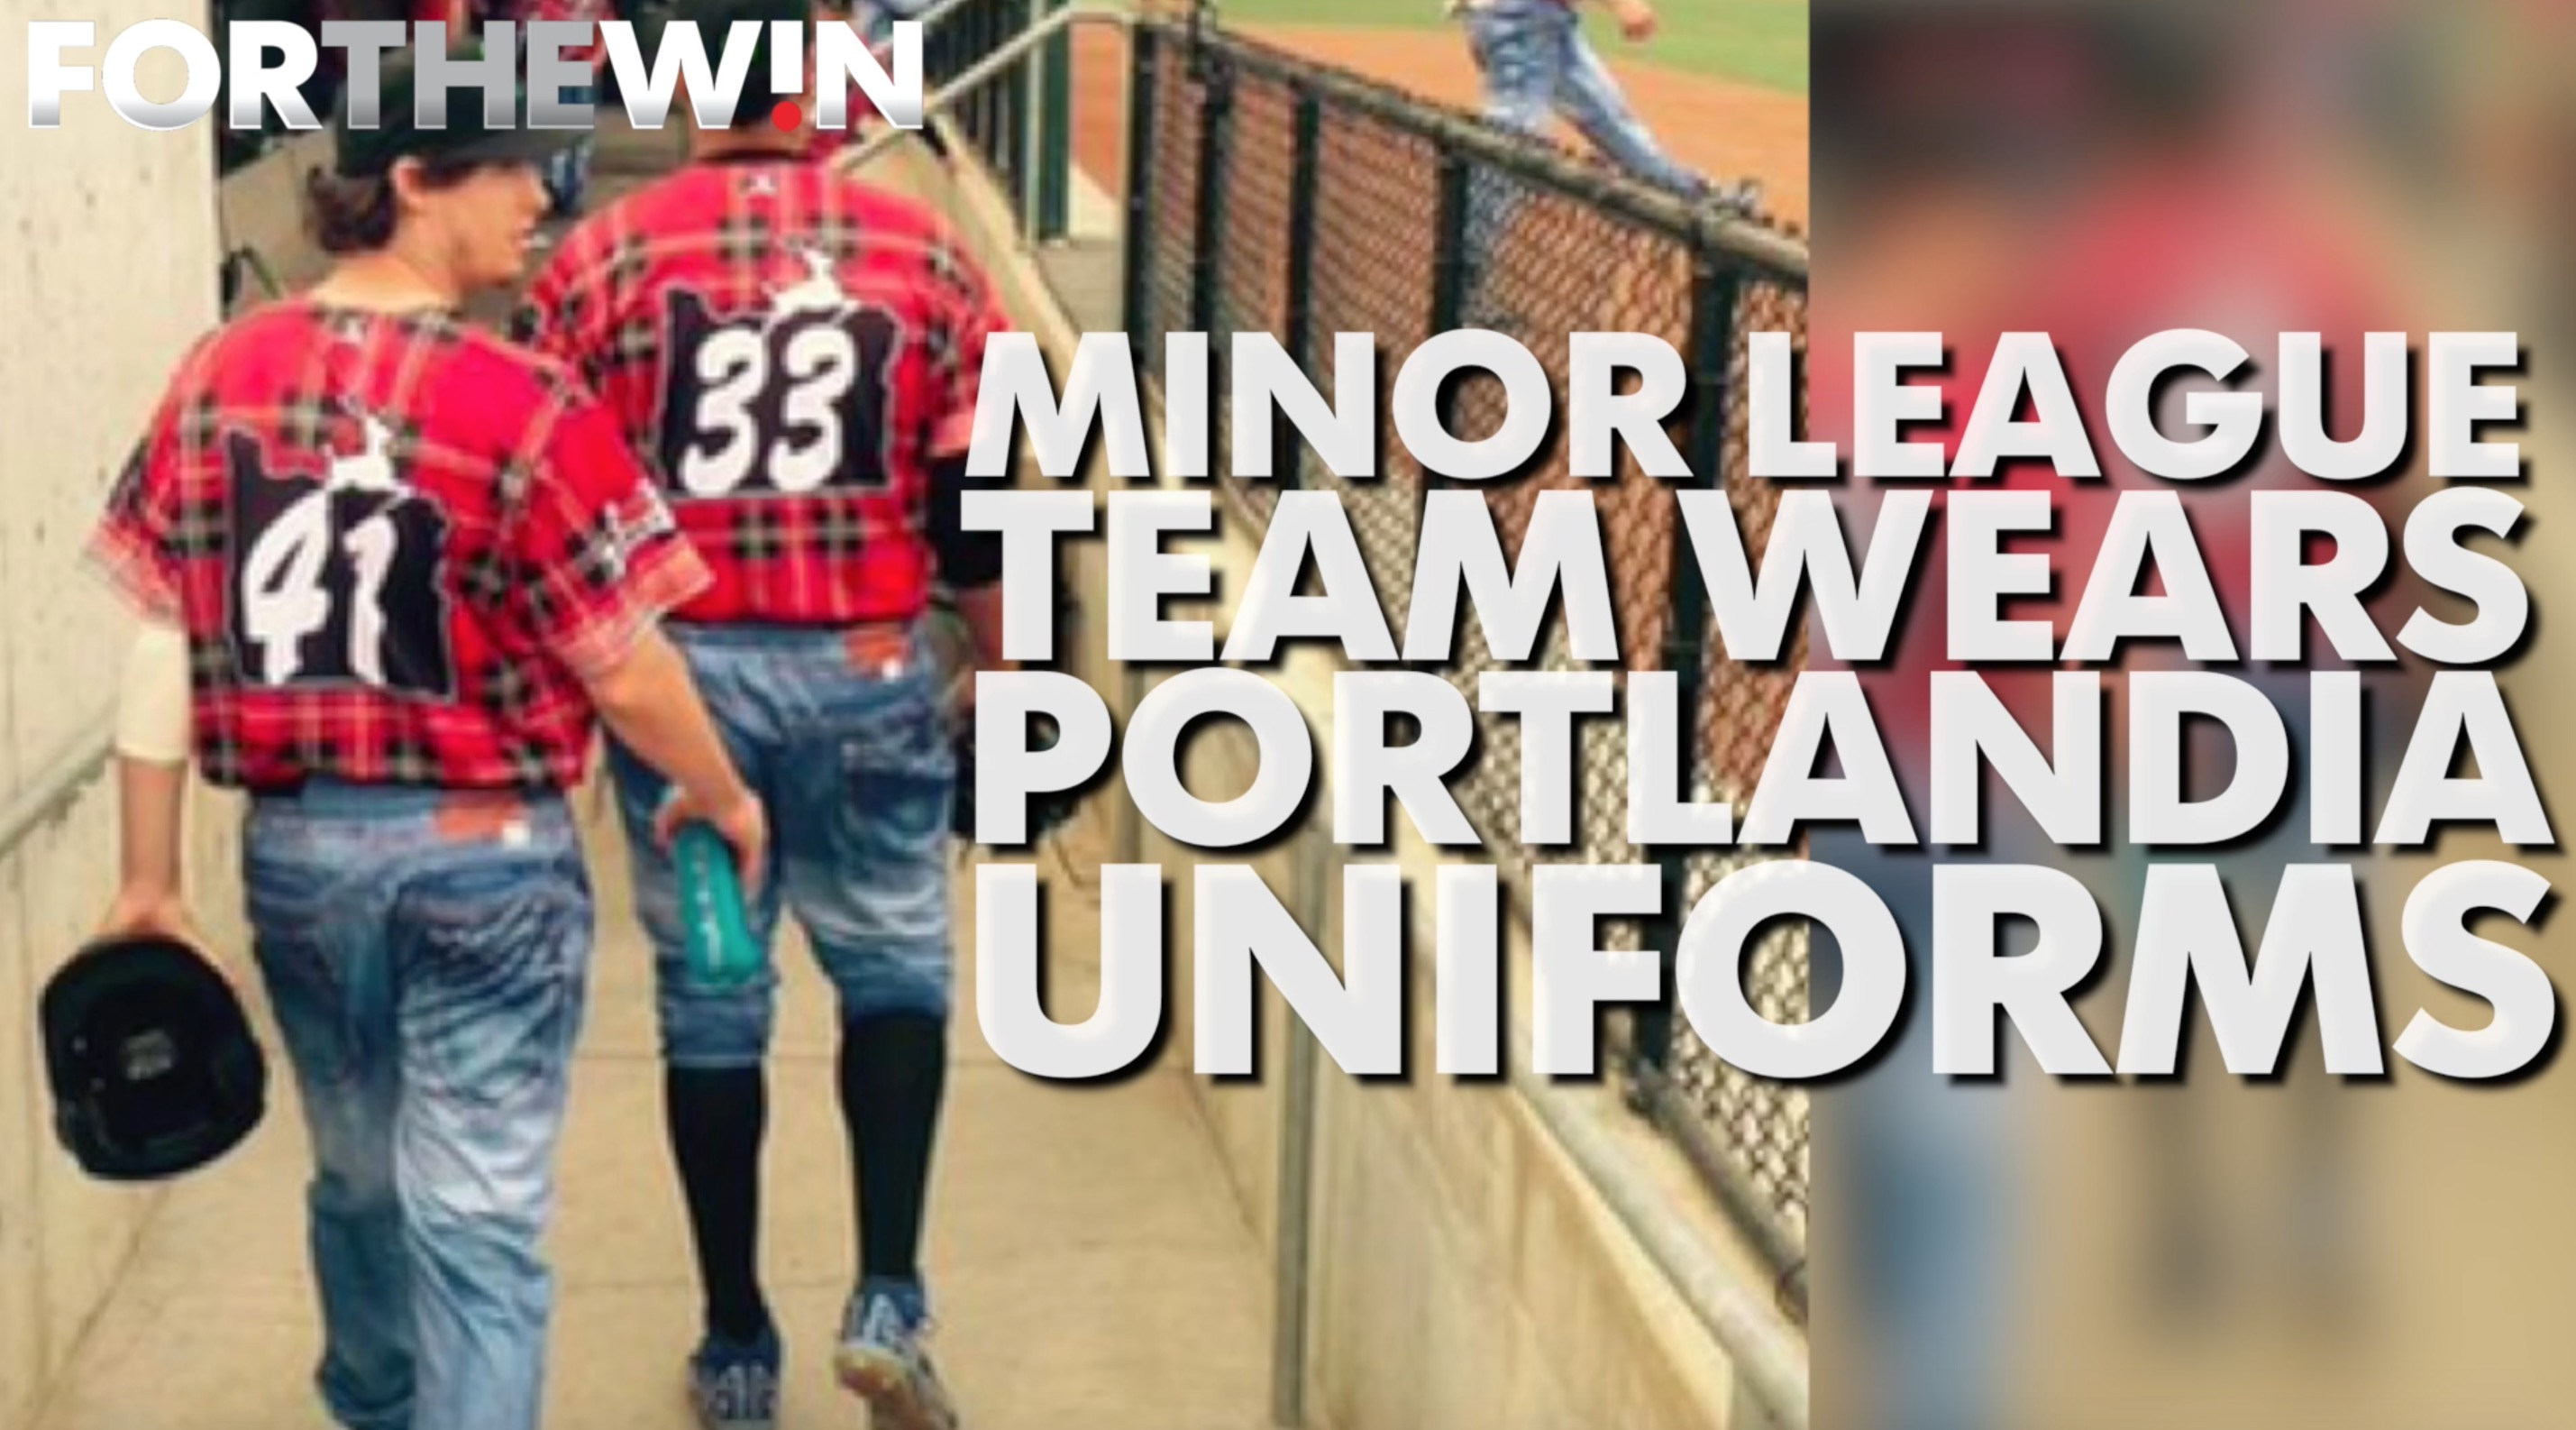 Minor league team wears Portlandia uniforms